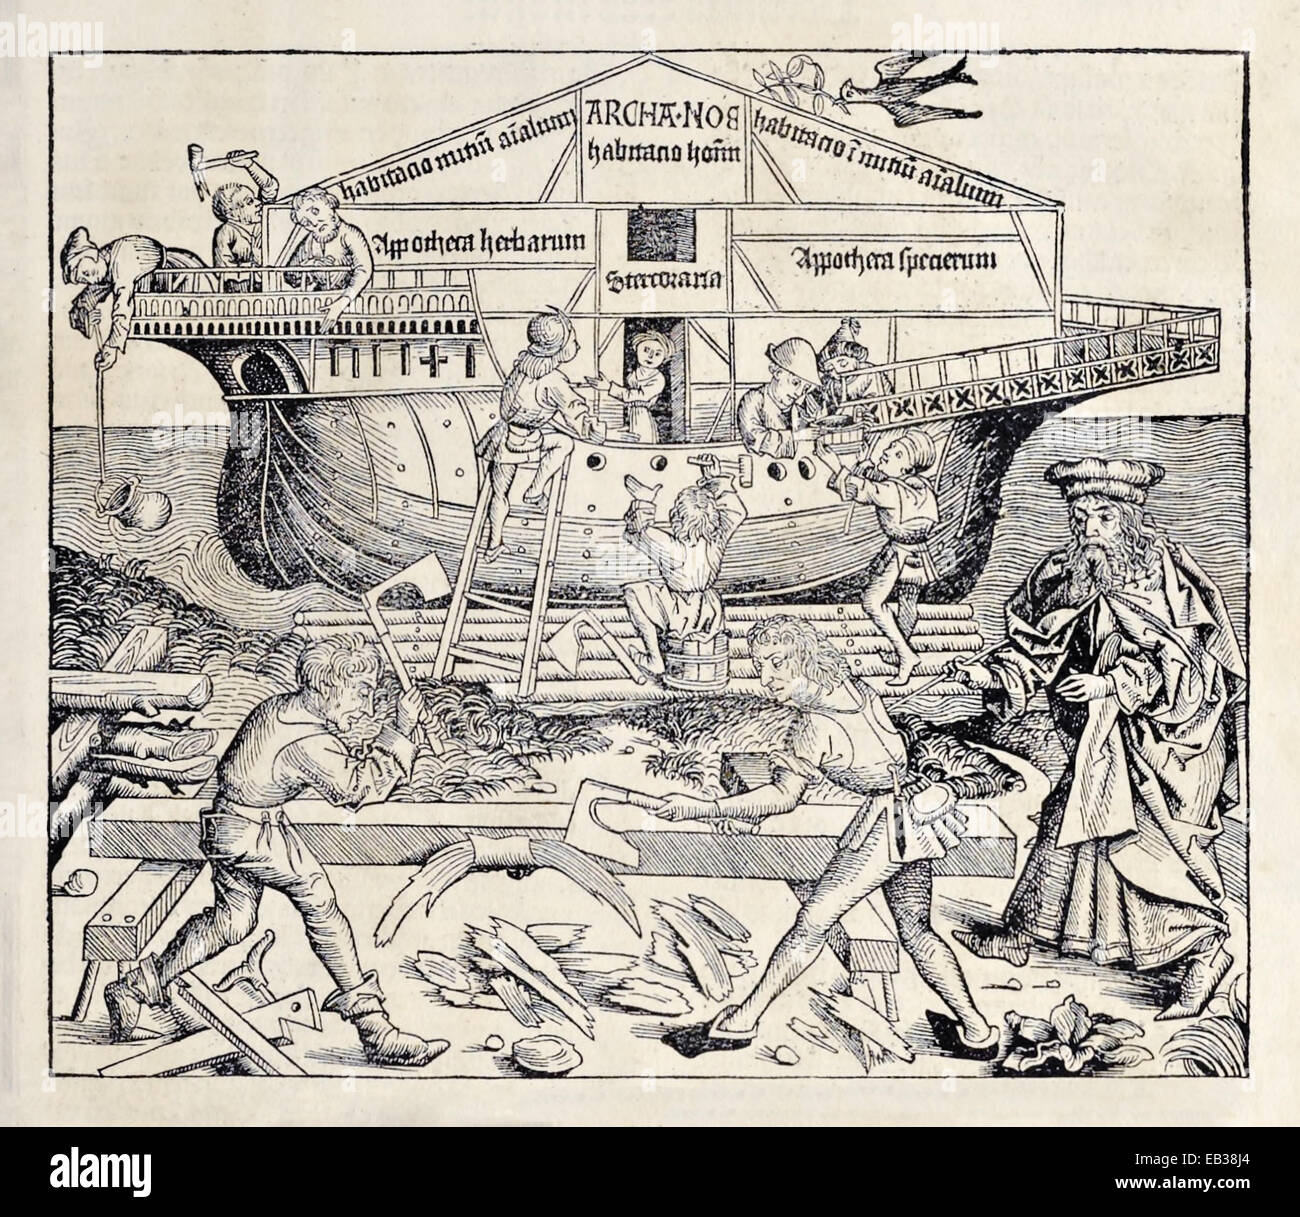 Construction of Noah's Ark. From 'Liber Chronicarum' by Hartmann Schedel (1440-1514). See description - Stock Image